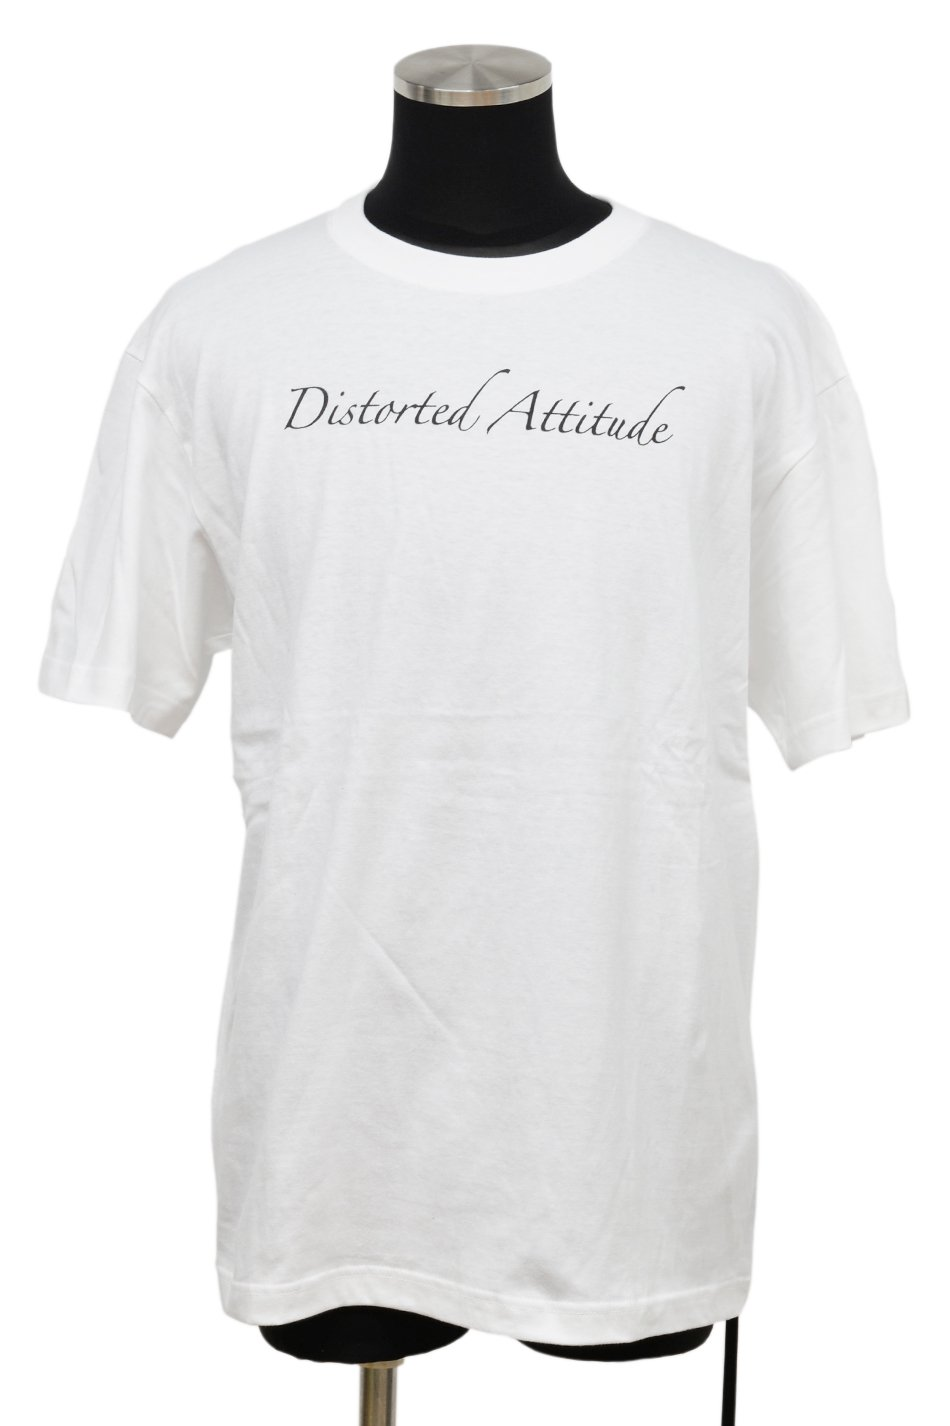 JOHNNY BUSINESS(ジョニービジネス )Distorted Attitude T-Shirt / White